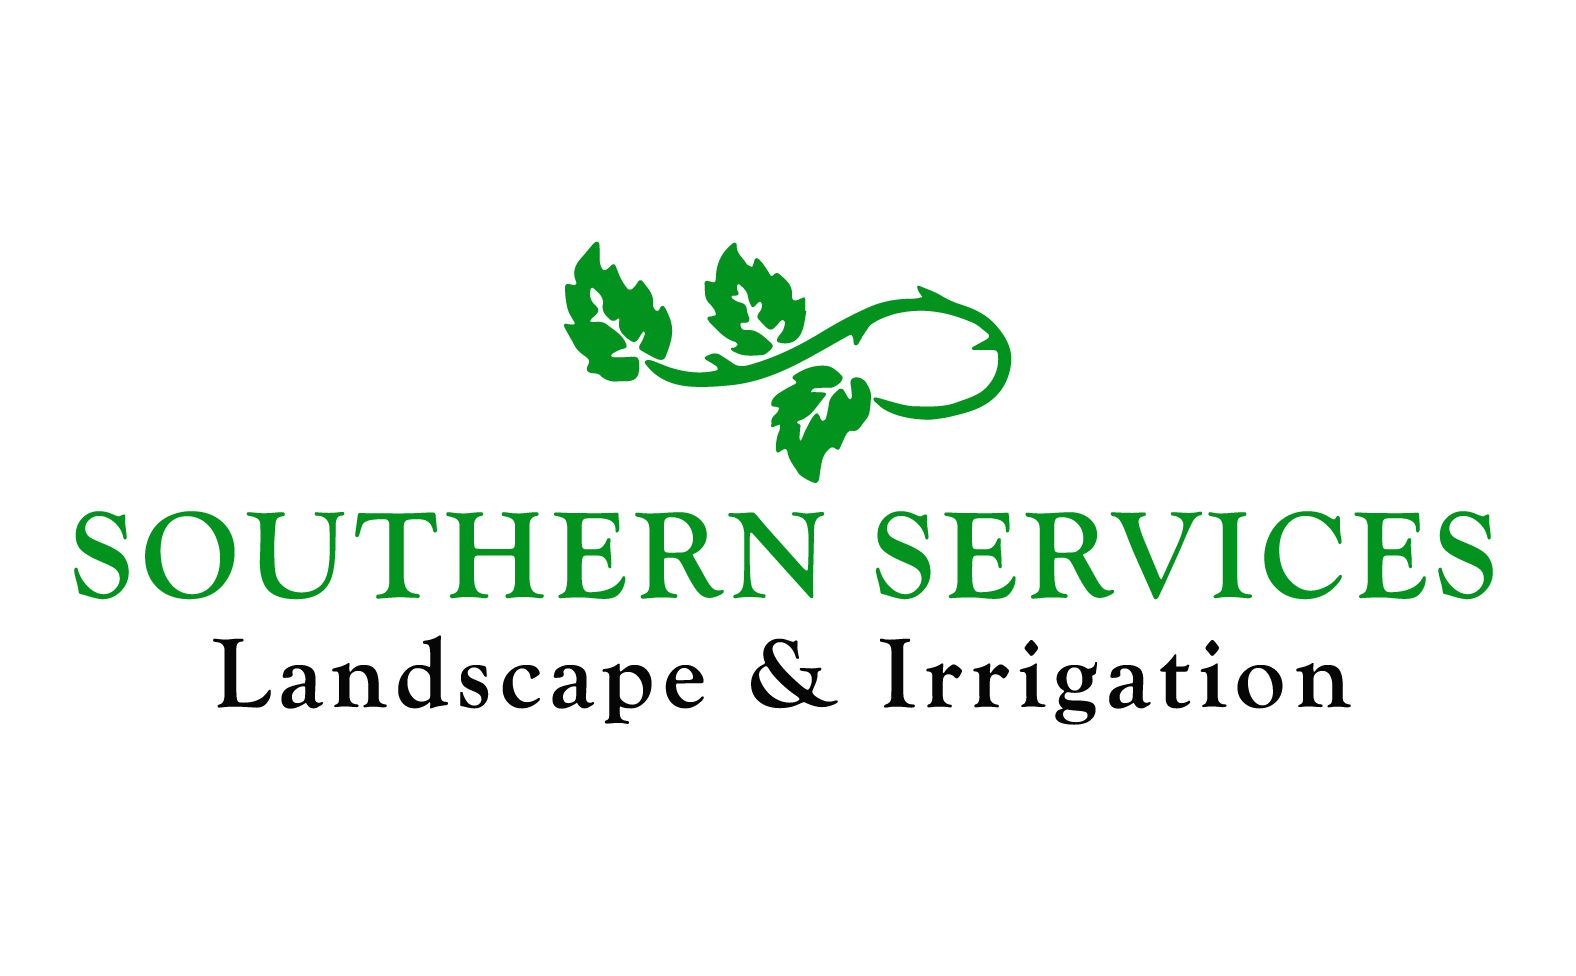 Corporate_Sponsor_Logos_Southern_Services-05.png